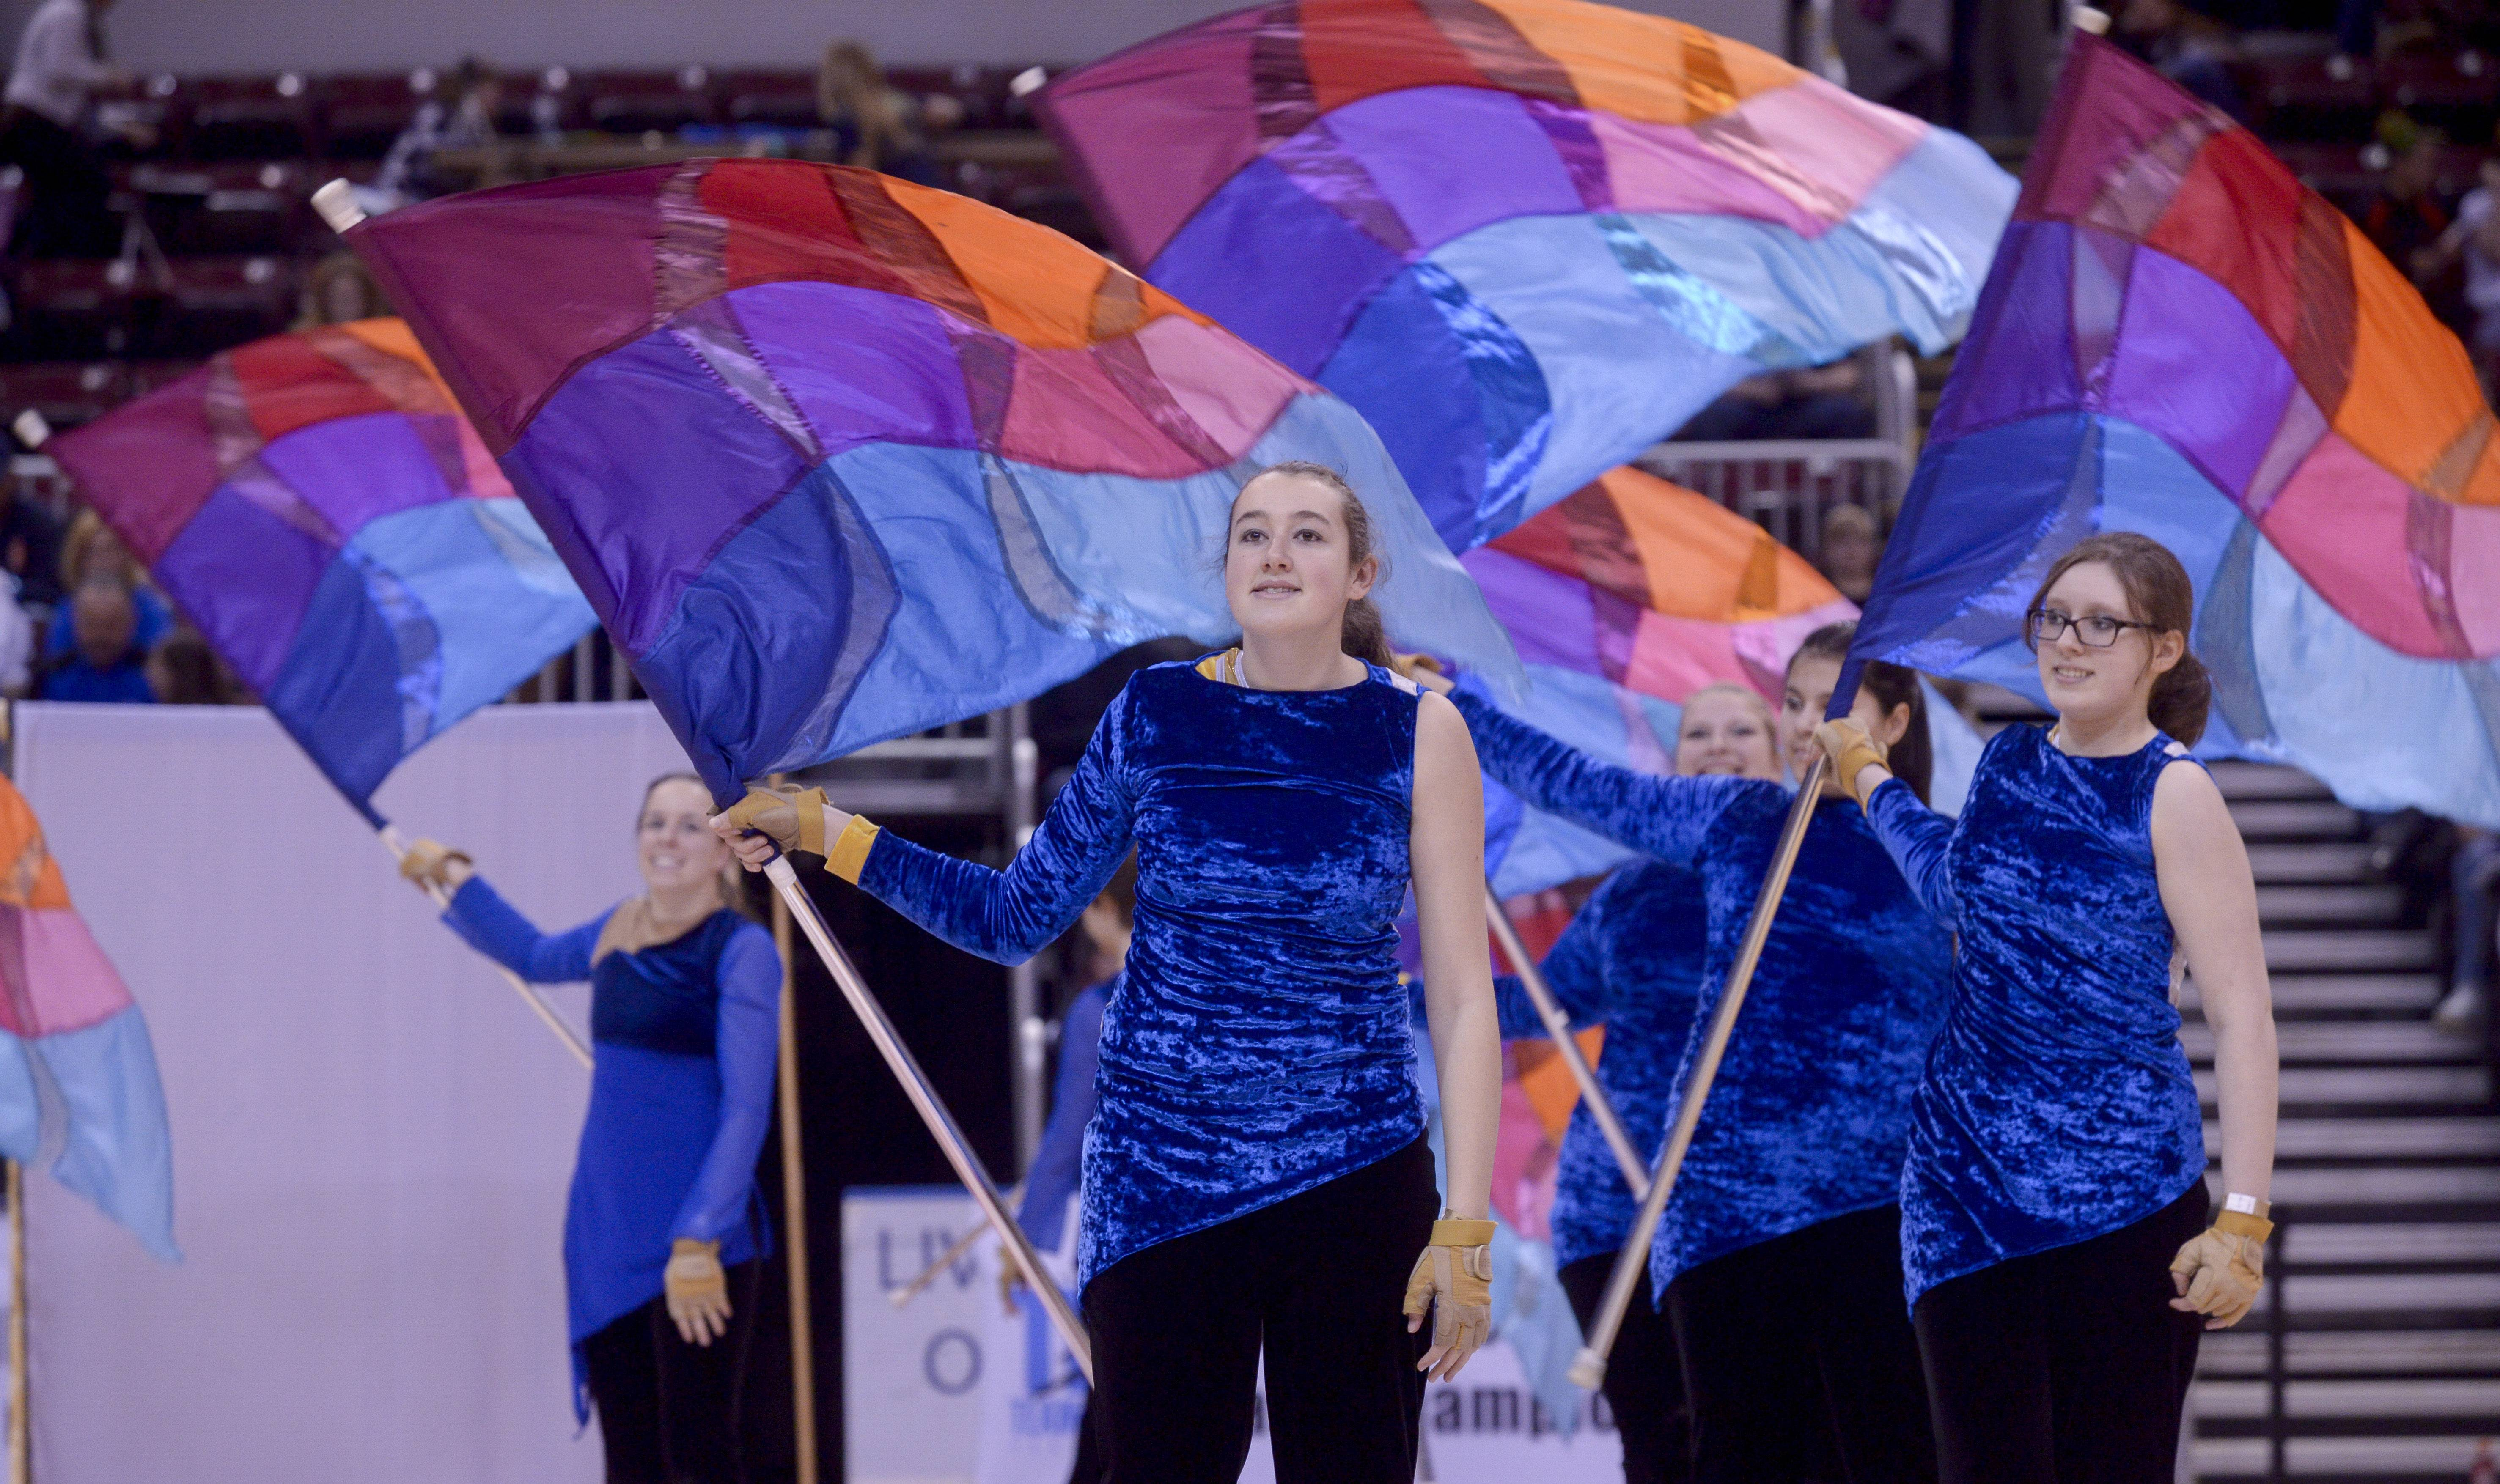 Mundelein High School performs in the Varsity Flag Winterguard Show category during the TEAMDance Illinois 2014 Grand Championship in Peoria, Sunday March 2nd.